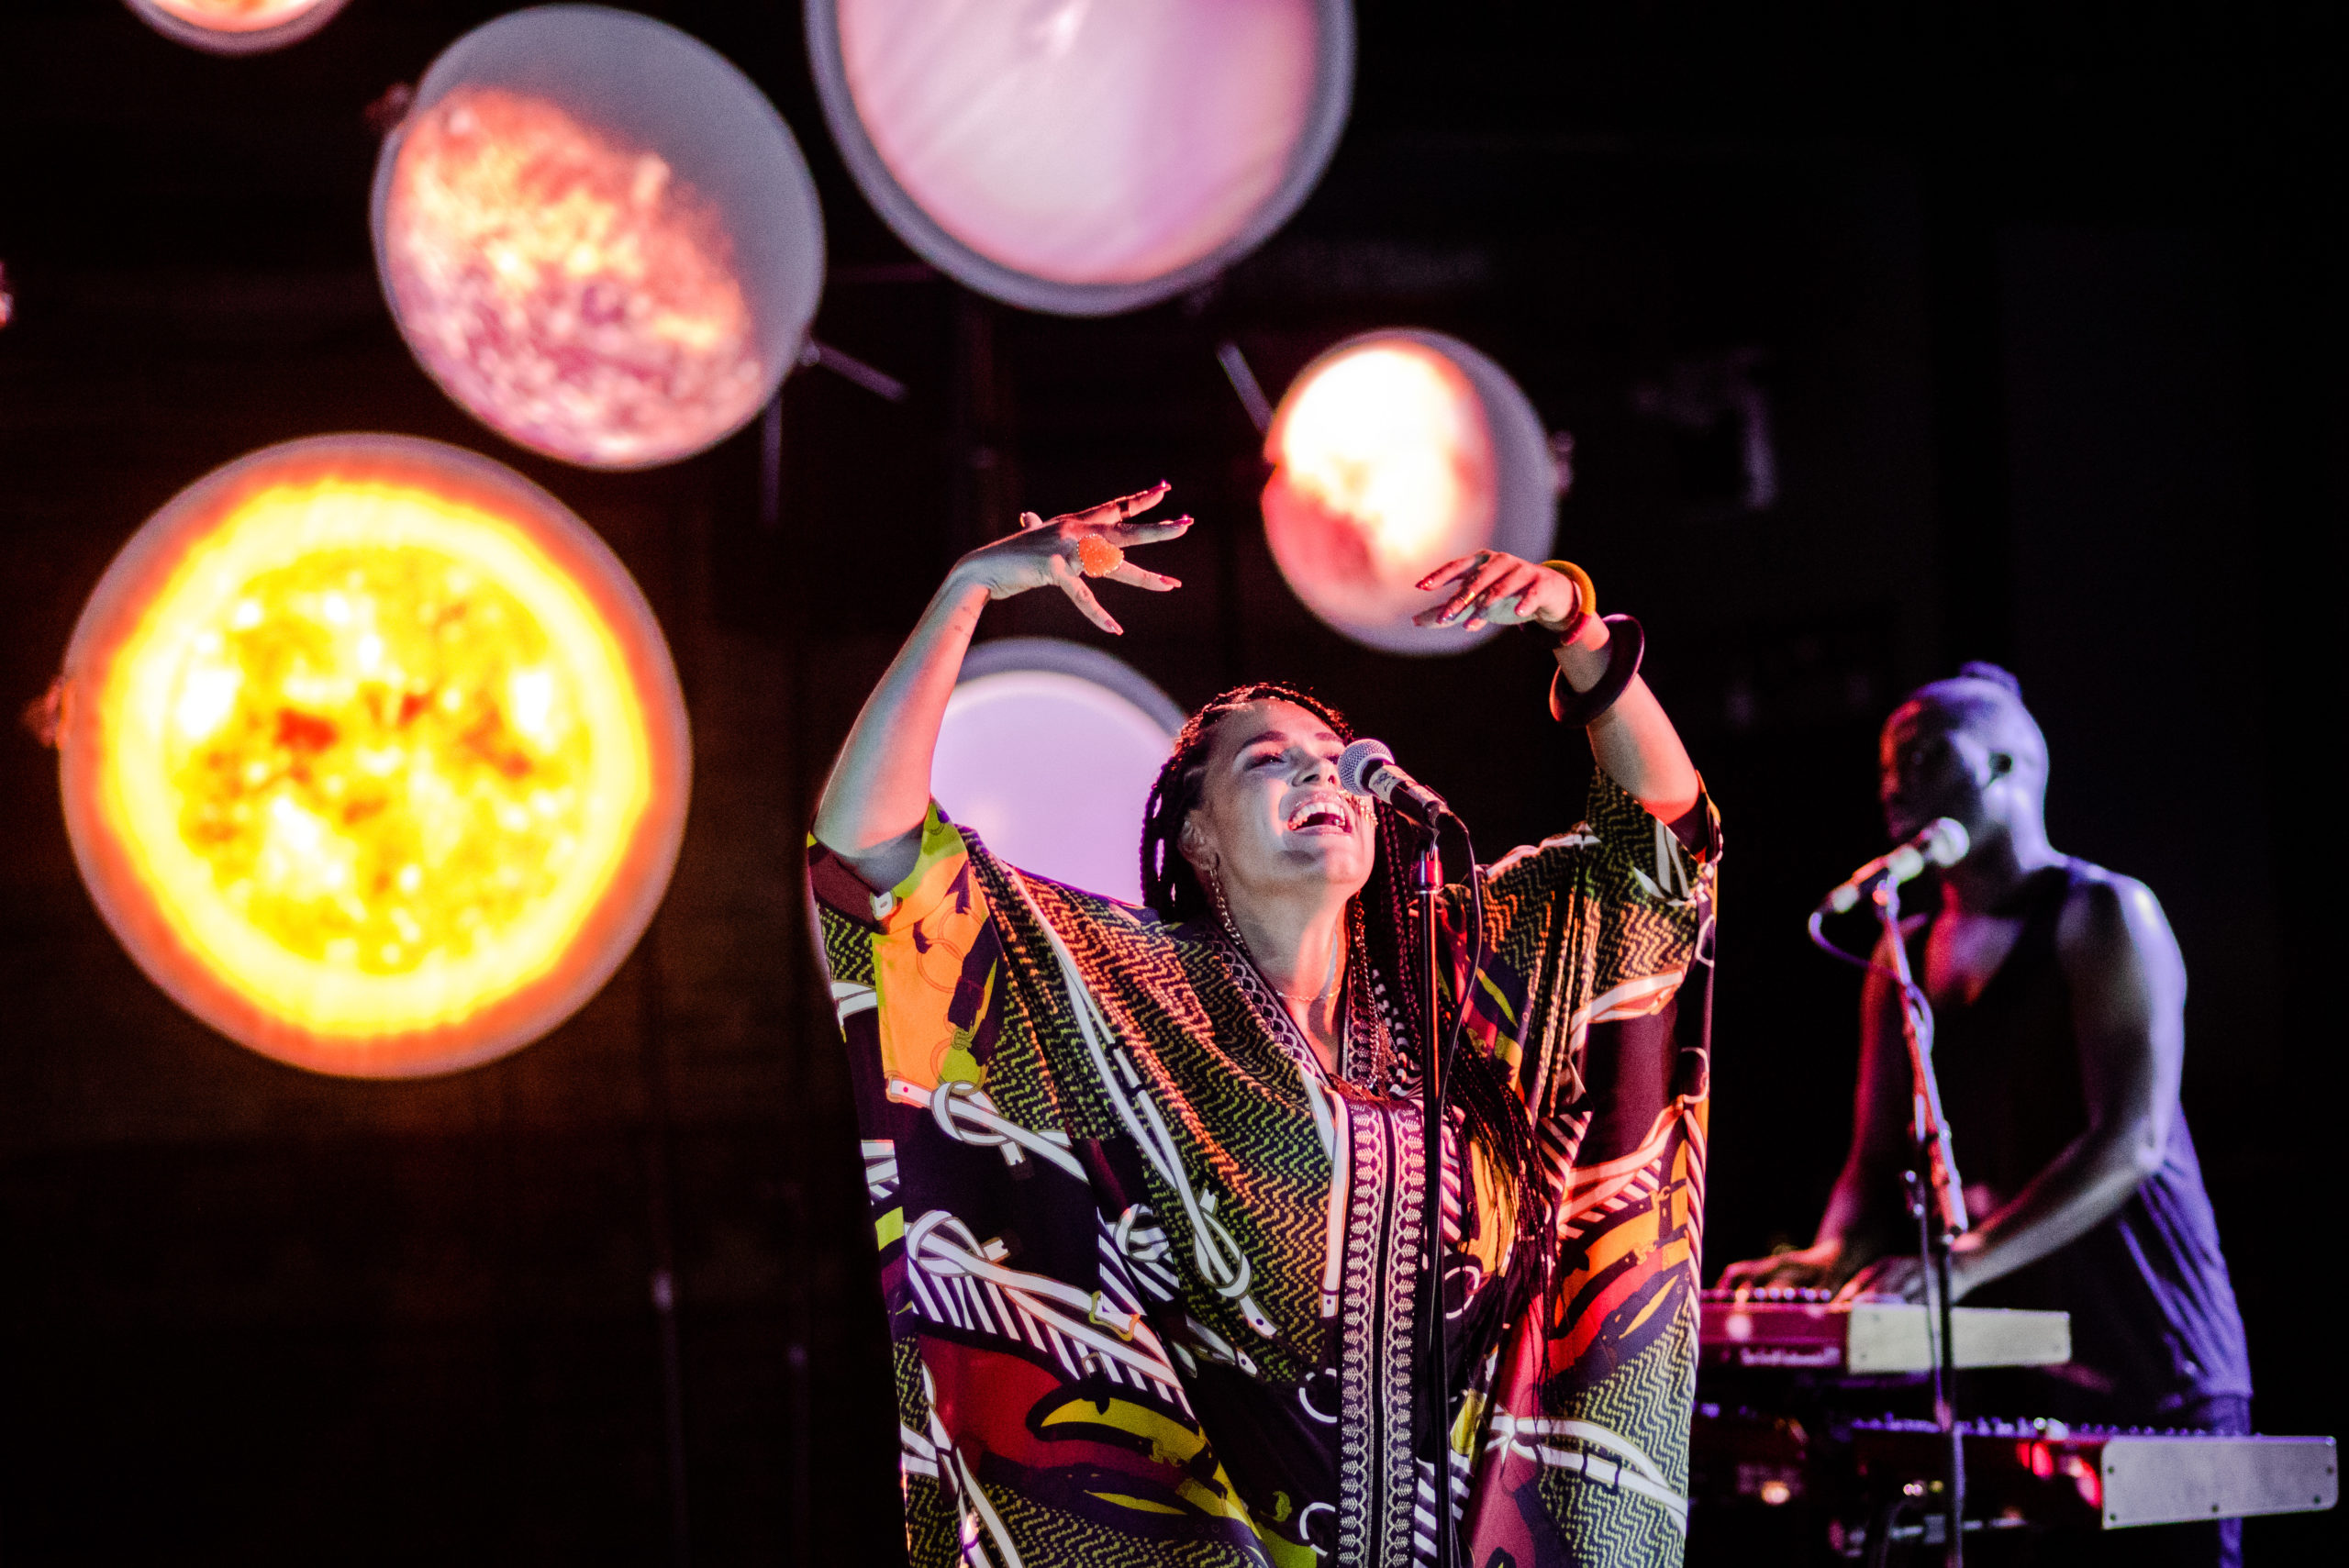 Image of Zaki Ibrahim performing at Guided by Starlight